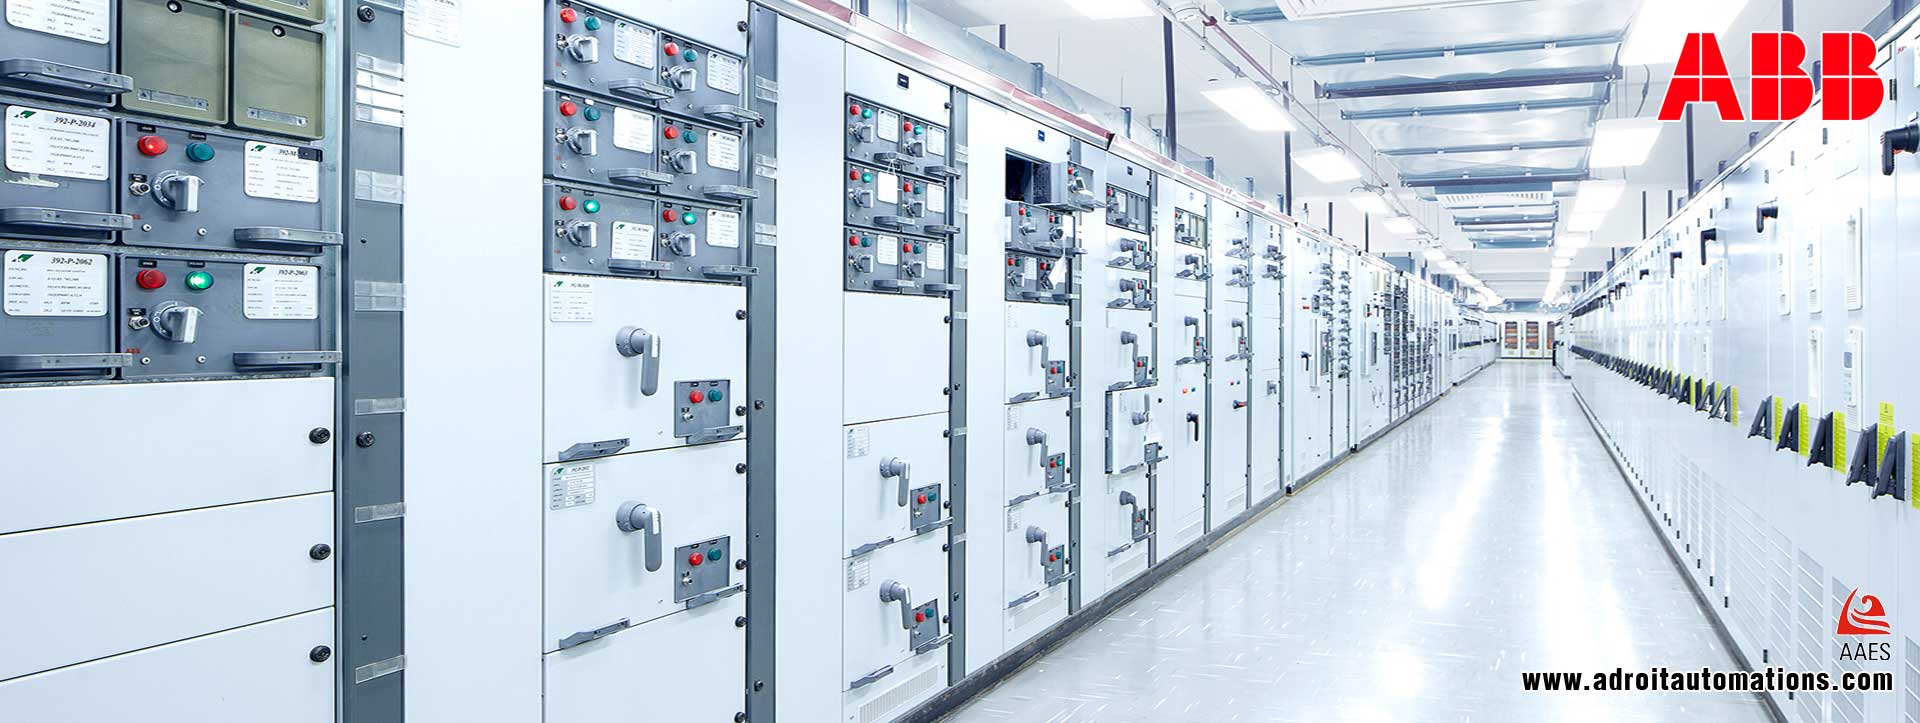 ABB SERVICE CENTRE (SwitchGears)